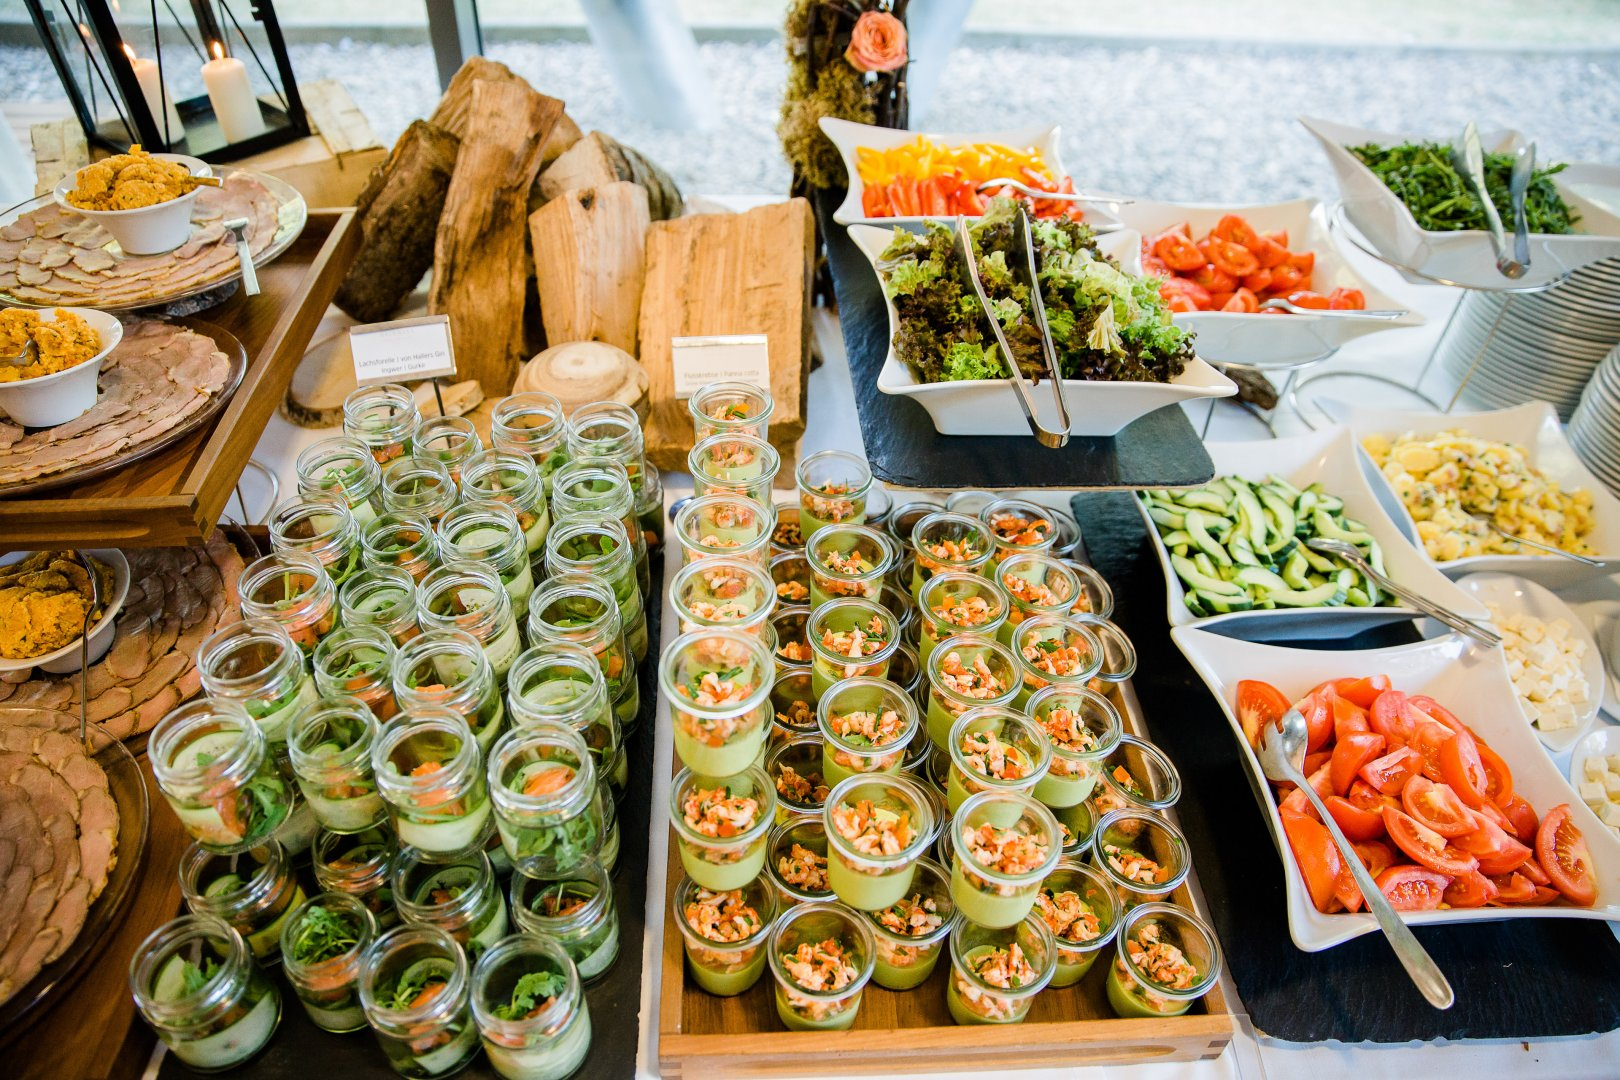 Dish Cuisine Meal Food Buffet Brunch appetizer Finger food Delicacy Ingredient Garnish À la carte food Side dish Hors d'oeuvre Lunch Meze Produce Thai food Canapé Supper Culinary art Chinese food Snack Tapas